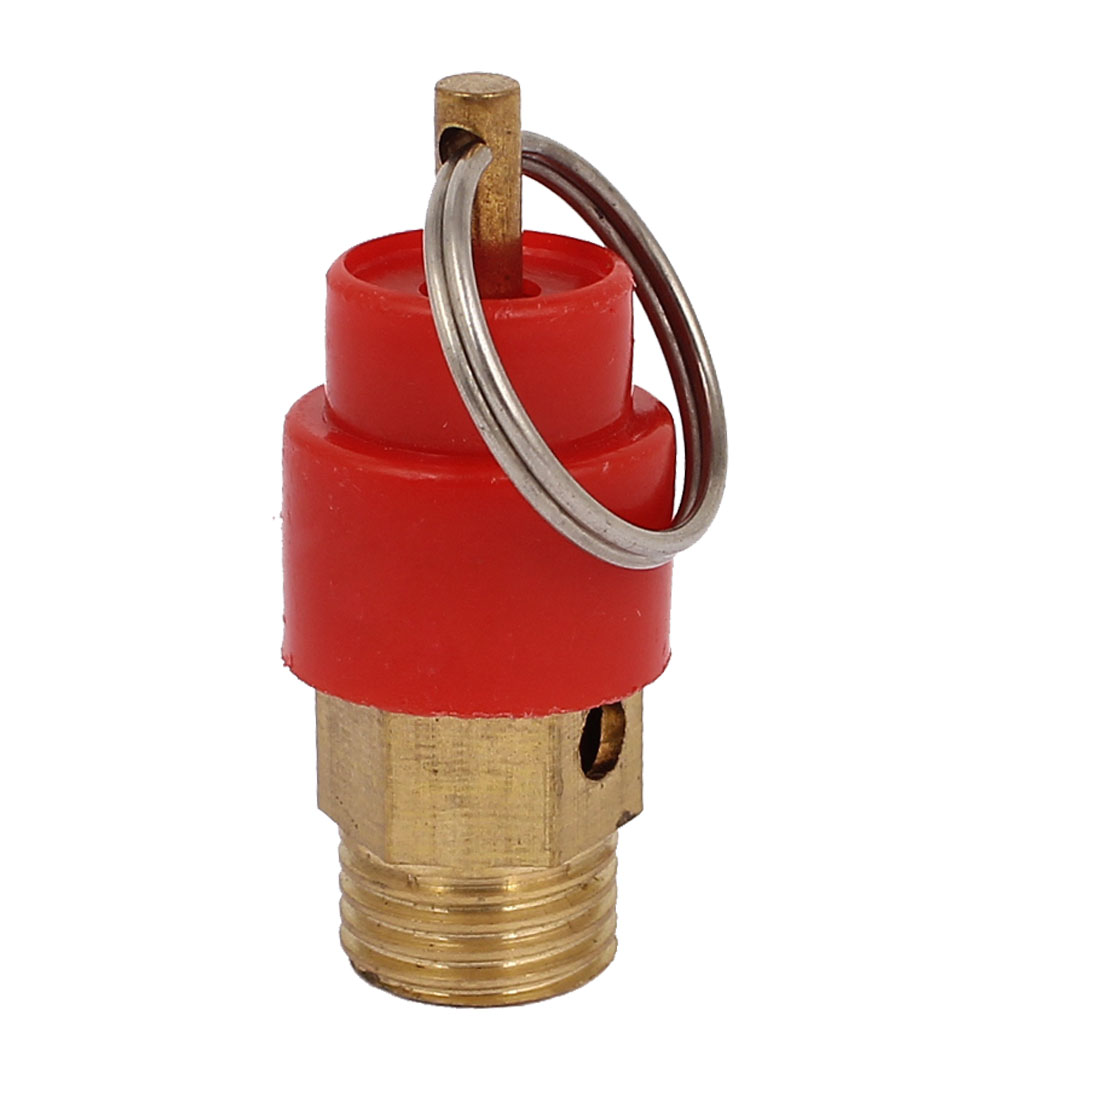 Air Compressor Pressure Relief Safety Valves Release Pneumatic Fitting 1/4 BSP